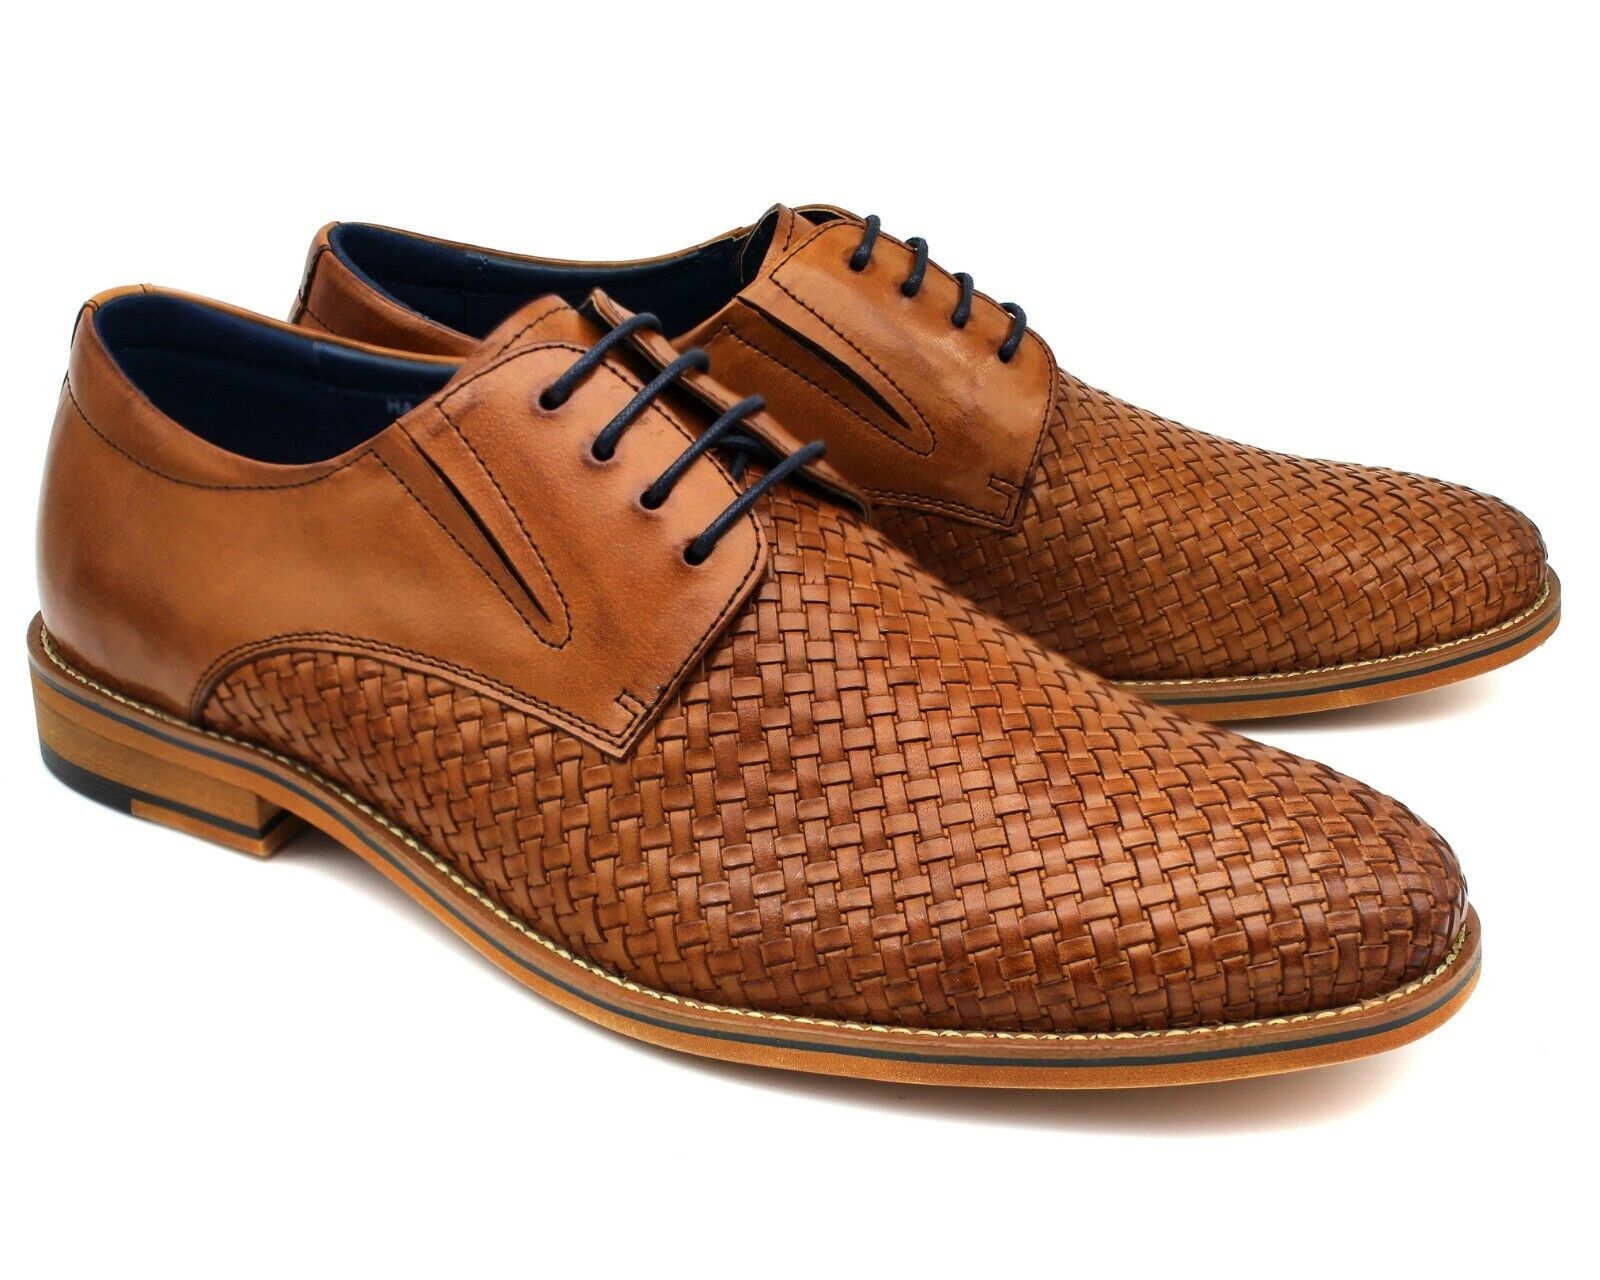 *A35 UK 10 MENS BROWN REAL LEATHER CASUAL SHOES WOVEN LACE UP SMART OFFICE EU 44